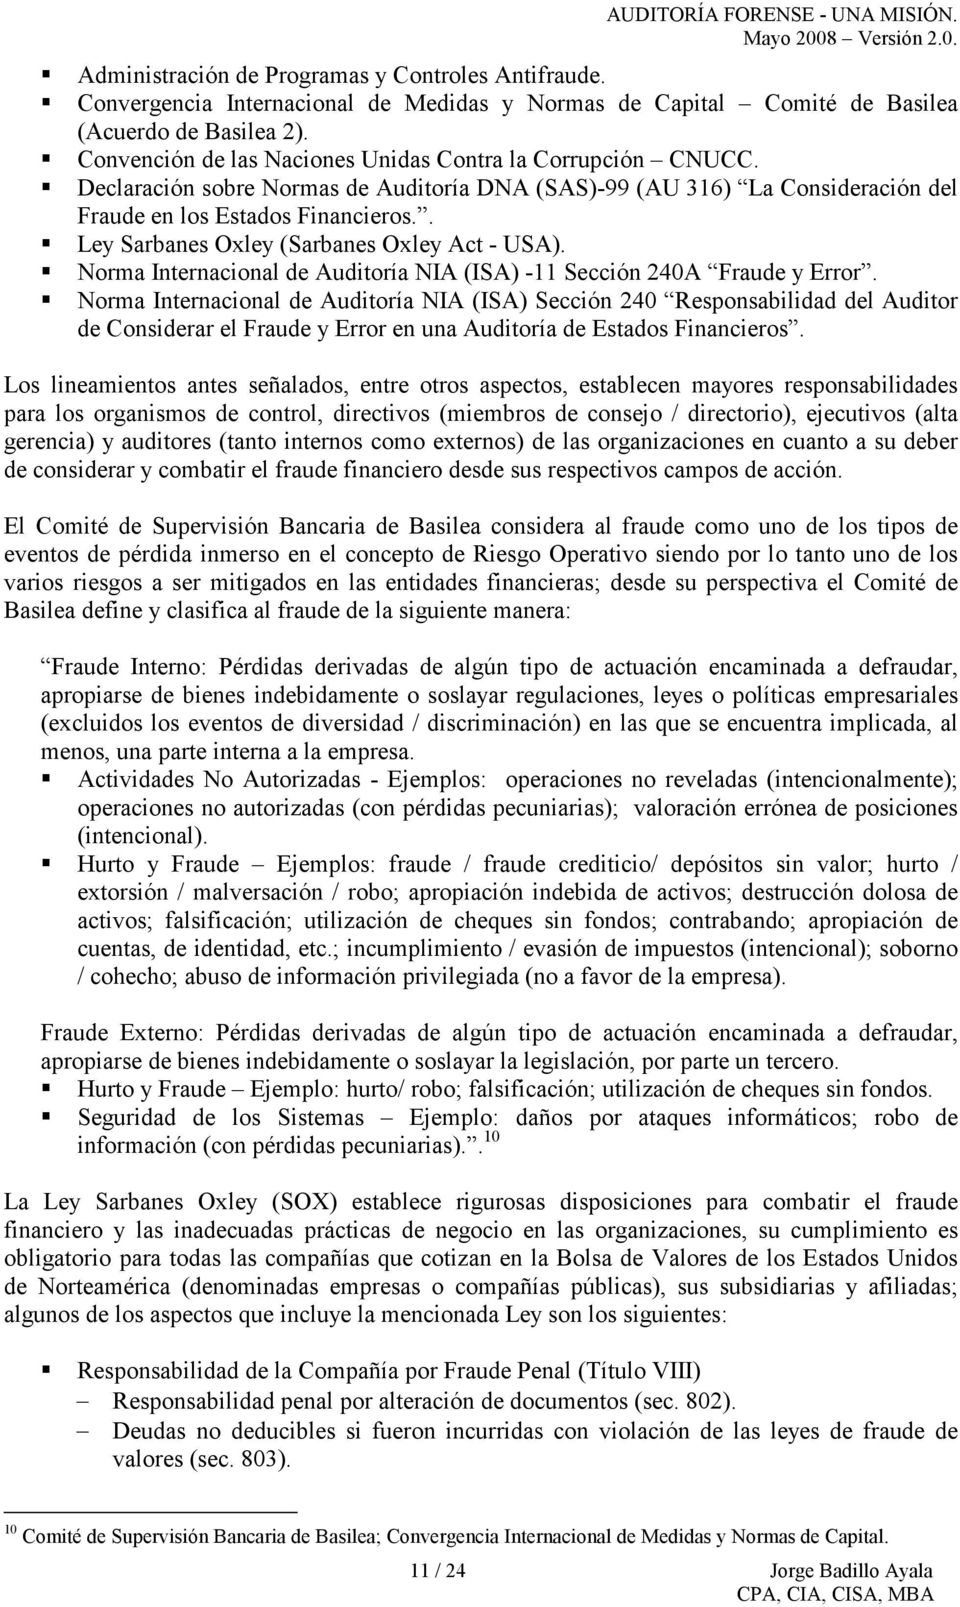 . Ley Sarbanes Oxley (Sarbanes Oxley Act - USA). Norma Internacional de Auditoría NIA (ISA) -11 Sección 240A Fraude y Error.